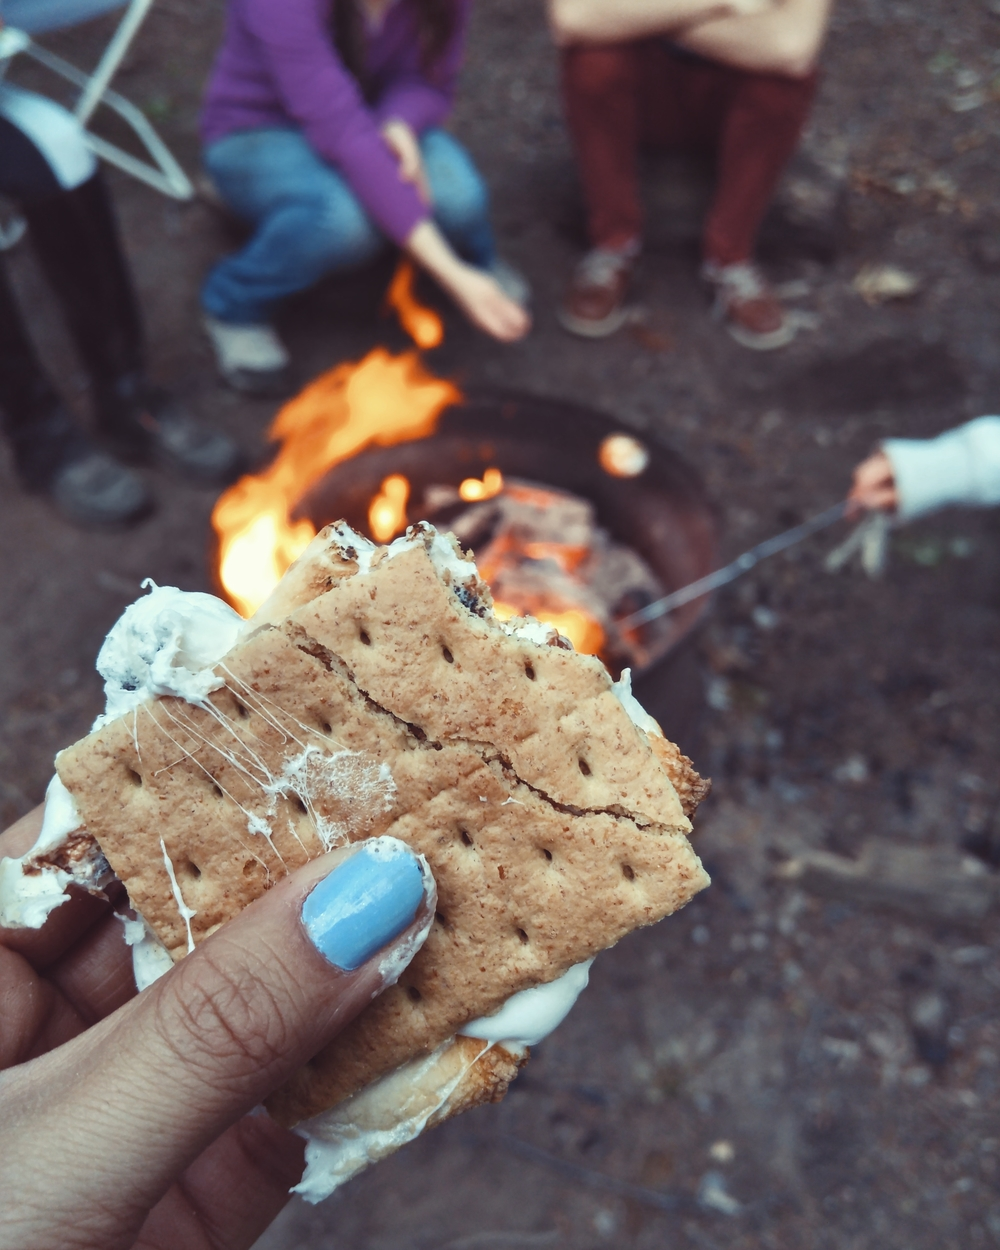 Change out the ingredients of your s'mores if you're feeling saucy.